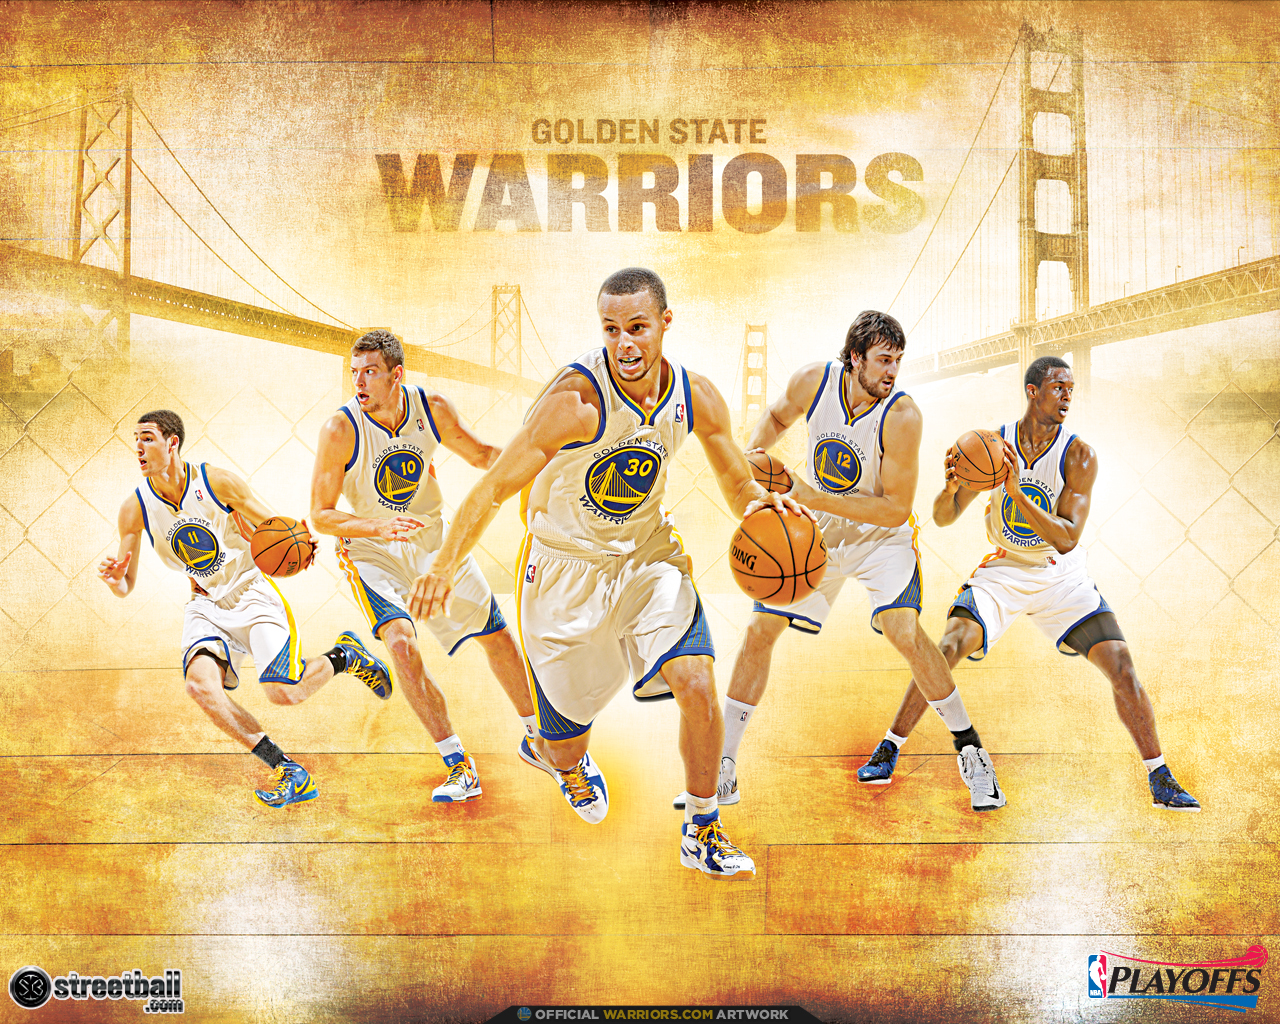 Images of Kd Golden State Warriors Wallpaper - #SC